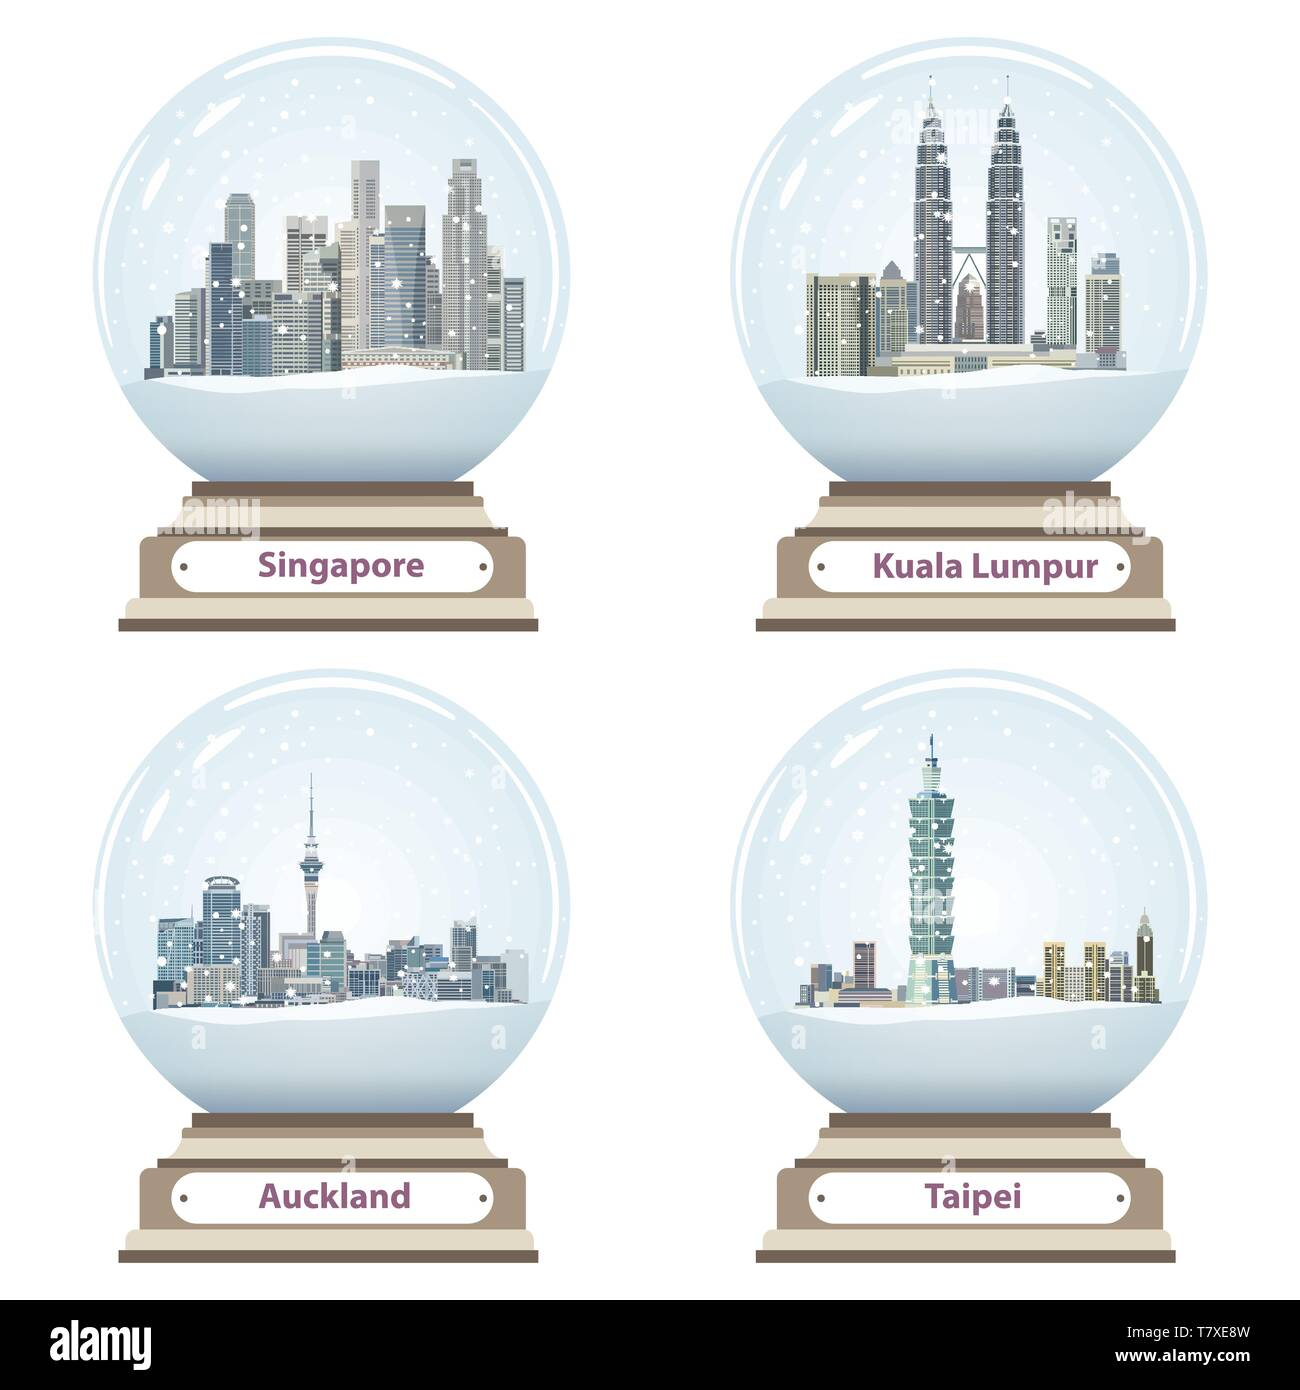 vector collection of snow globes with Singapore, Kuala Lumpur, Auckland and Taipei city skylines - Stock Image